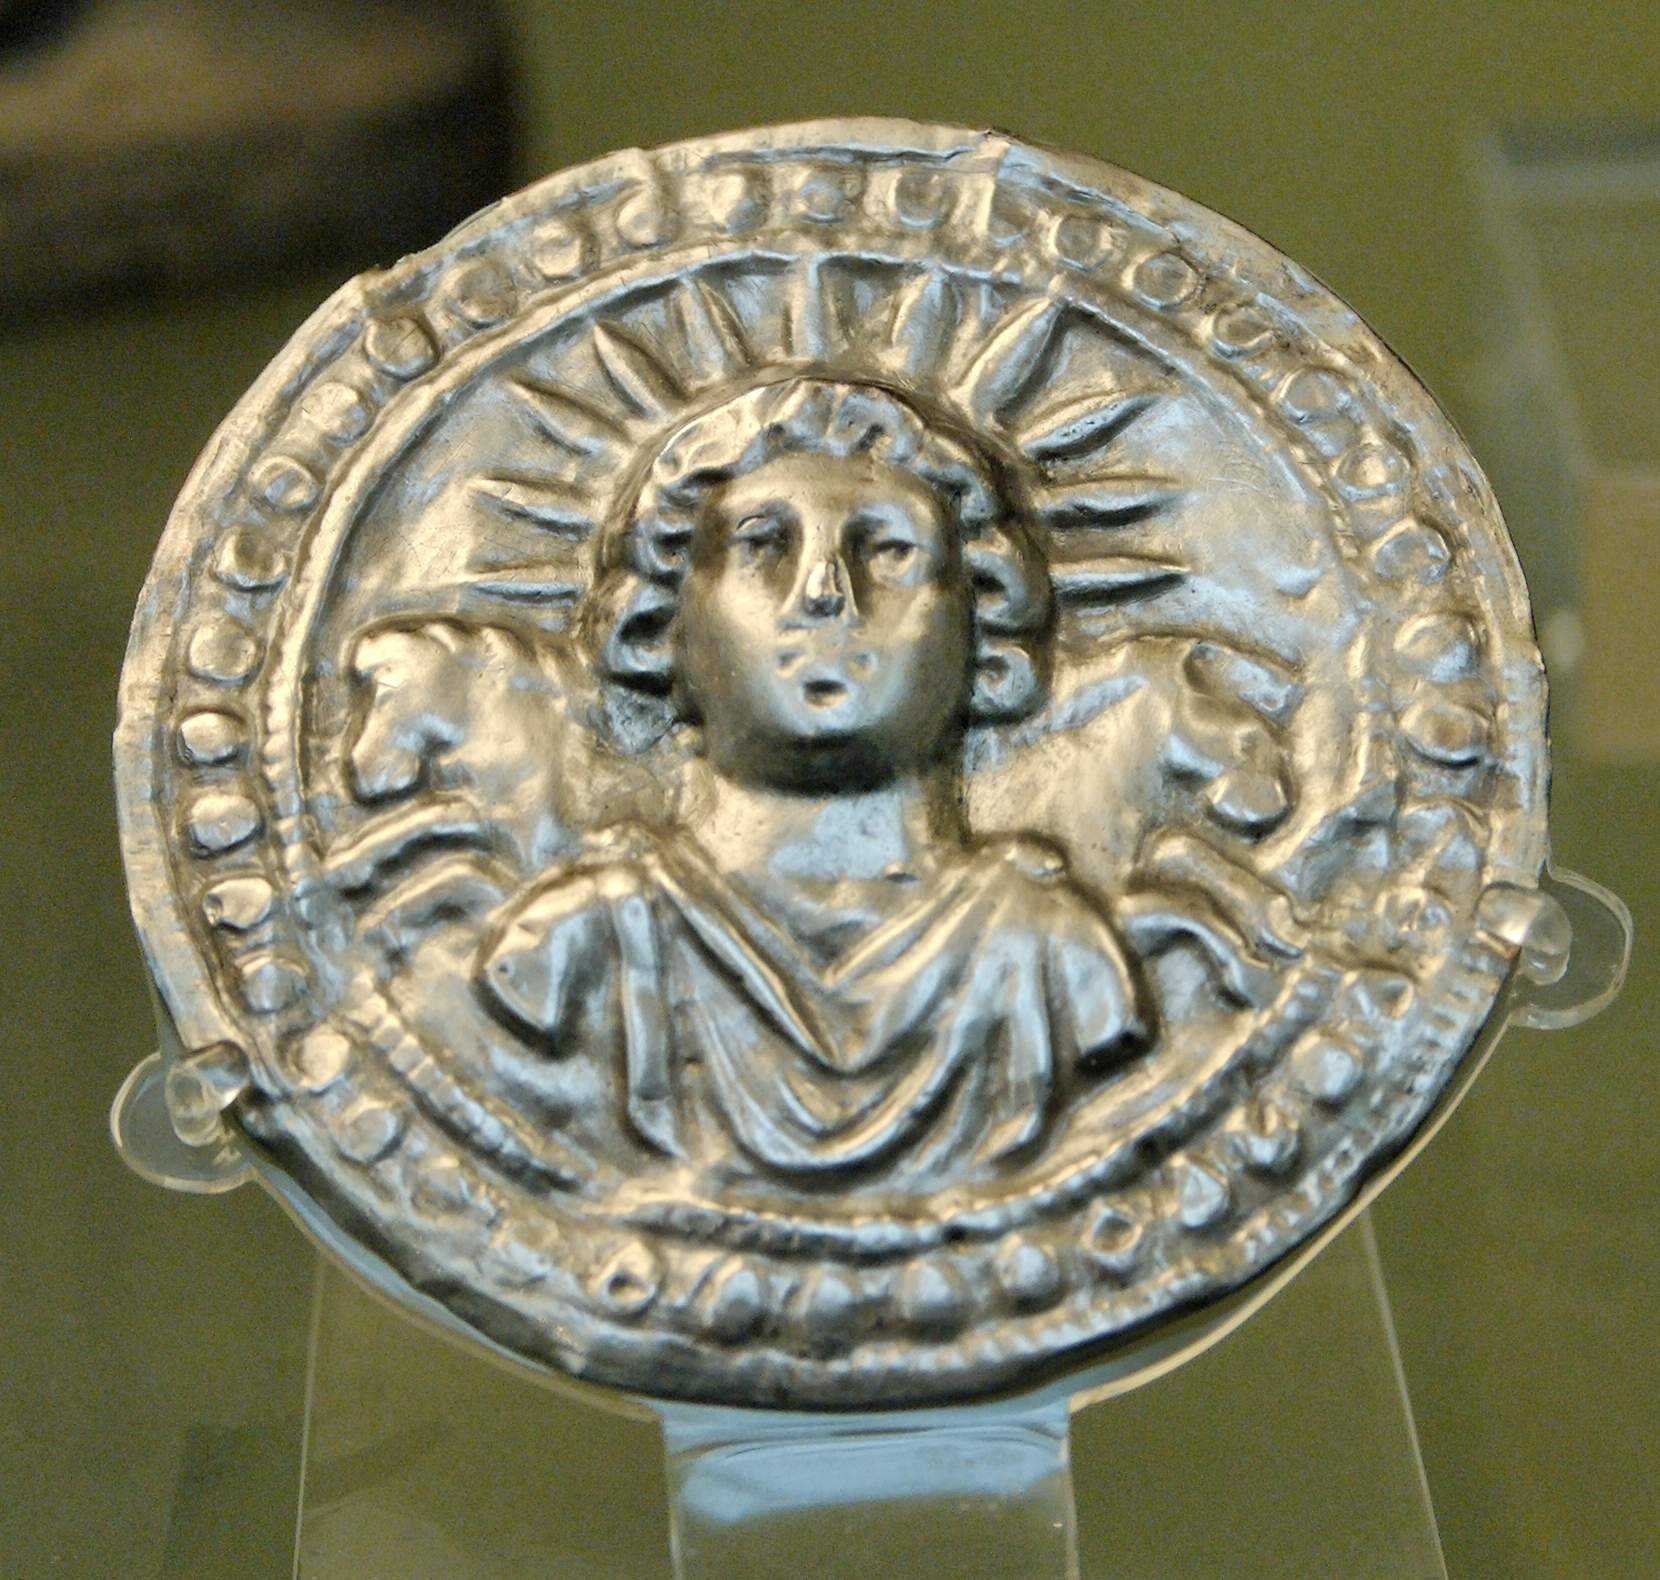 Leaf disc dedicated to Sol Invictus. Silver, Roman artwork, 3rd century AD. From Pessinus (Bala-Hissar, Asia Minor)